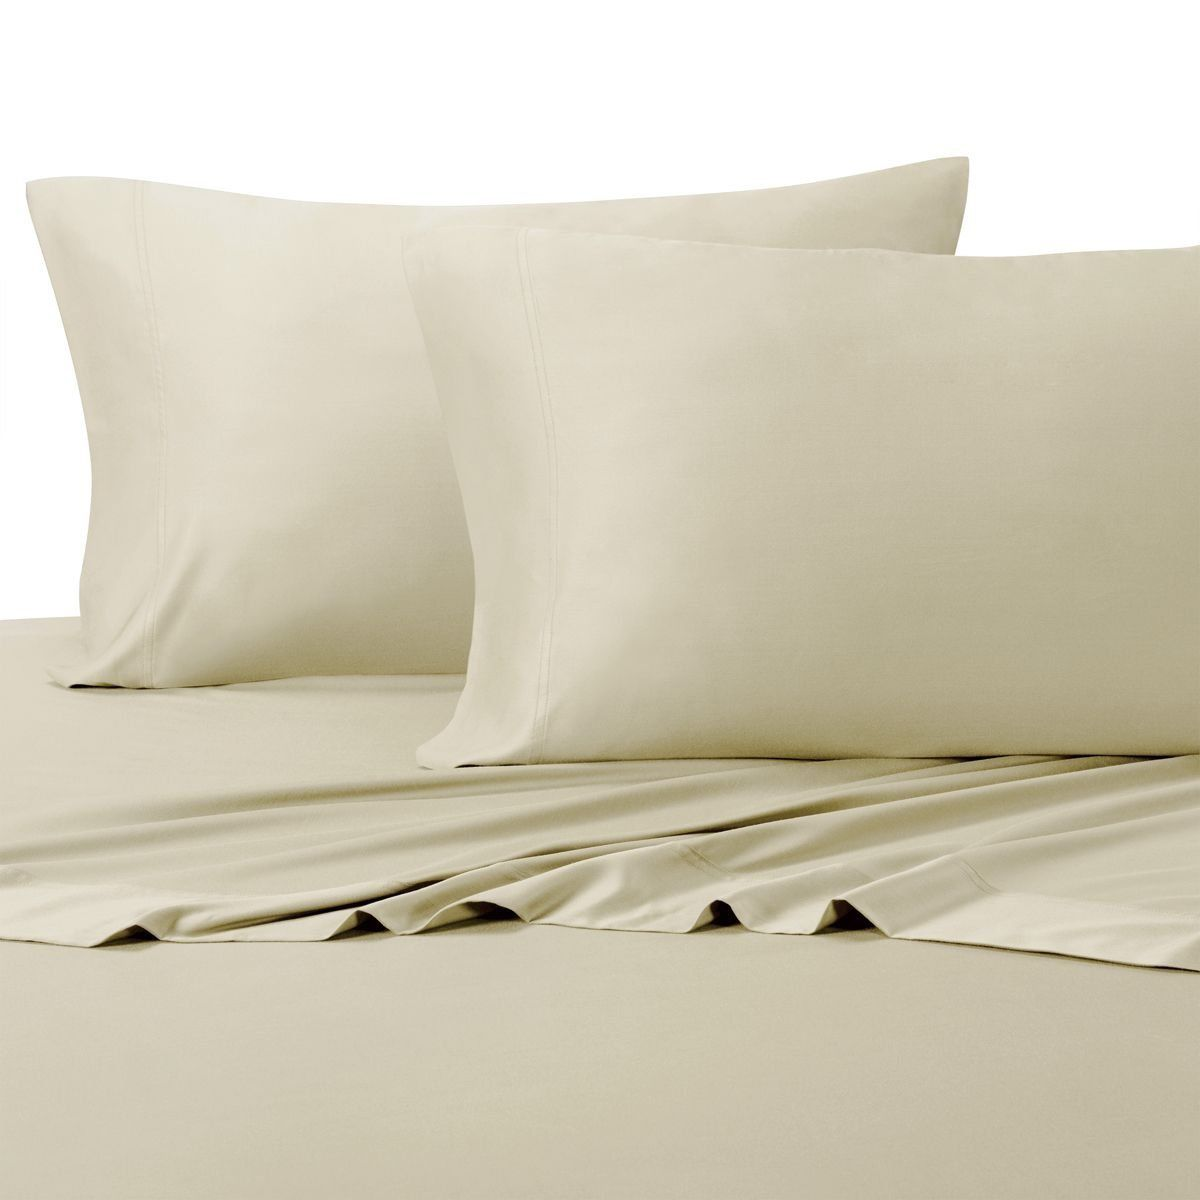 Royal Hotel Bamboo Sheets